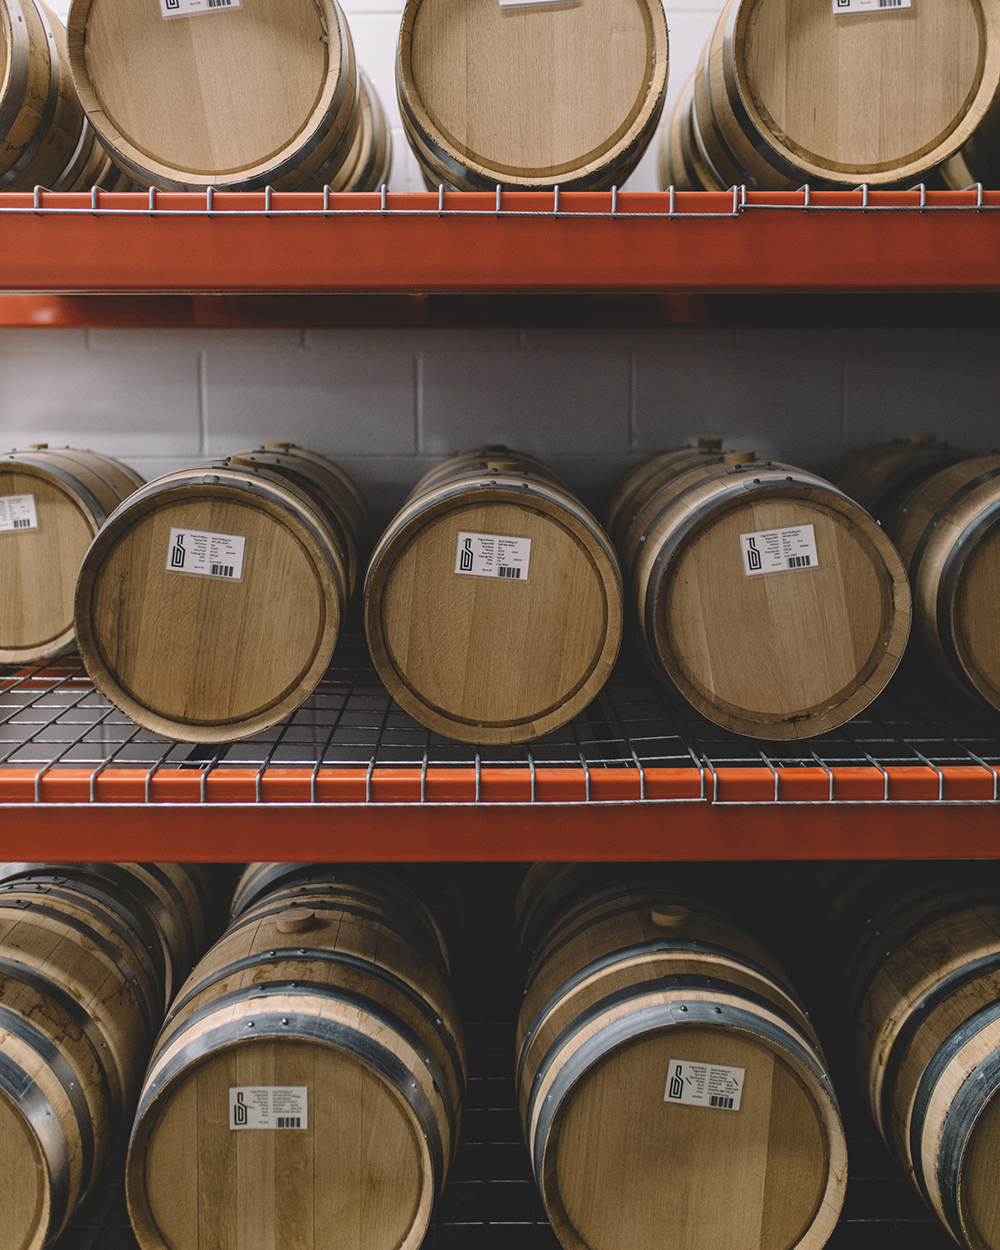 Some of the varying sizes of barrels used for aging at Studio Distilling // Photo by Sam Ziegler